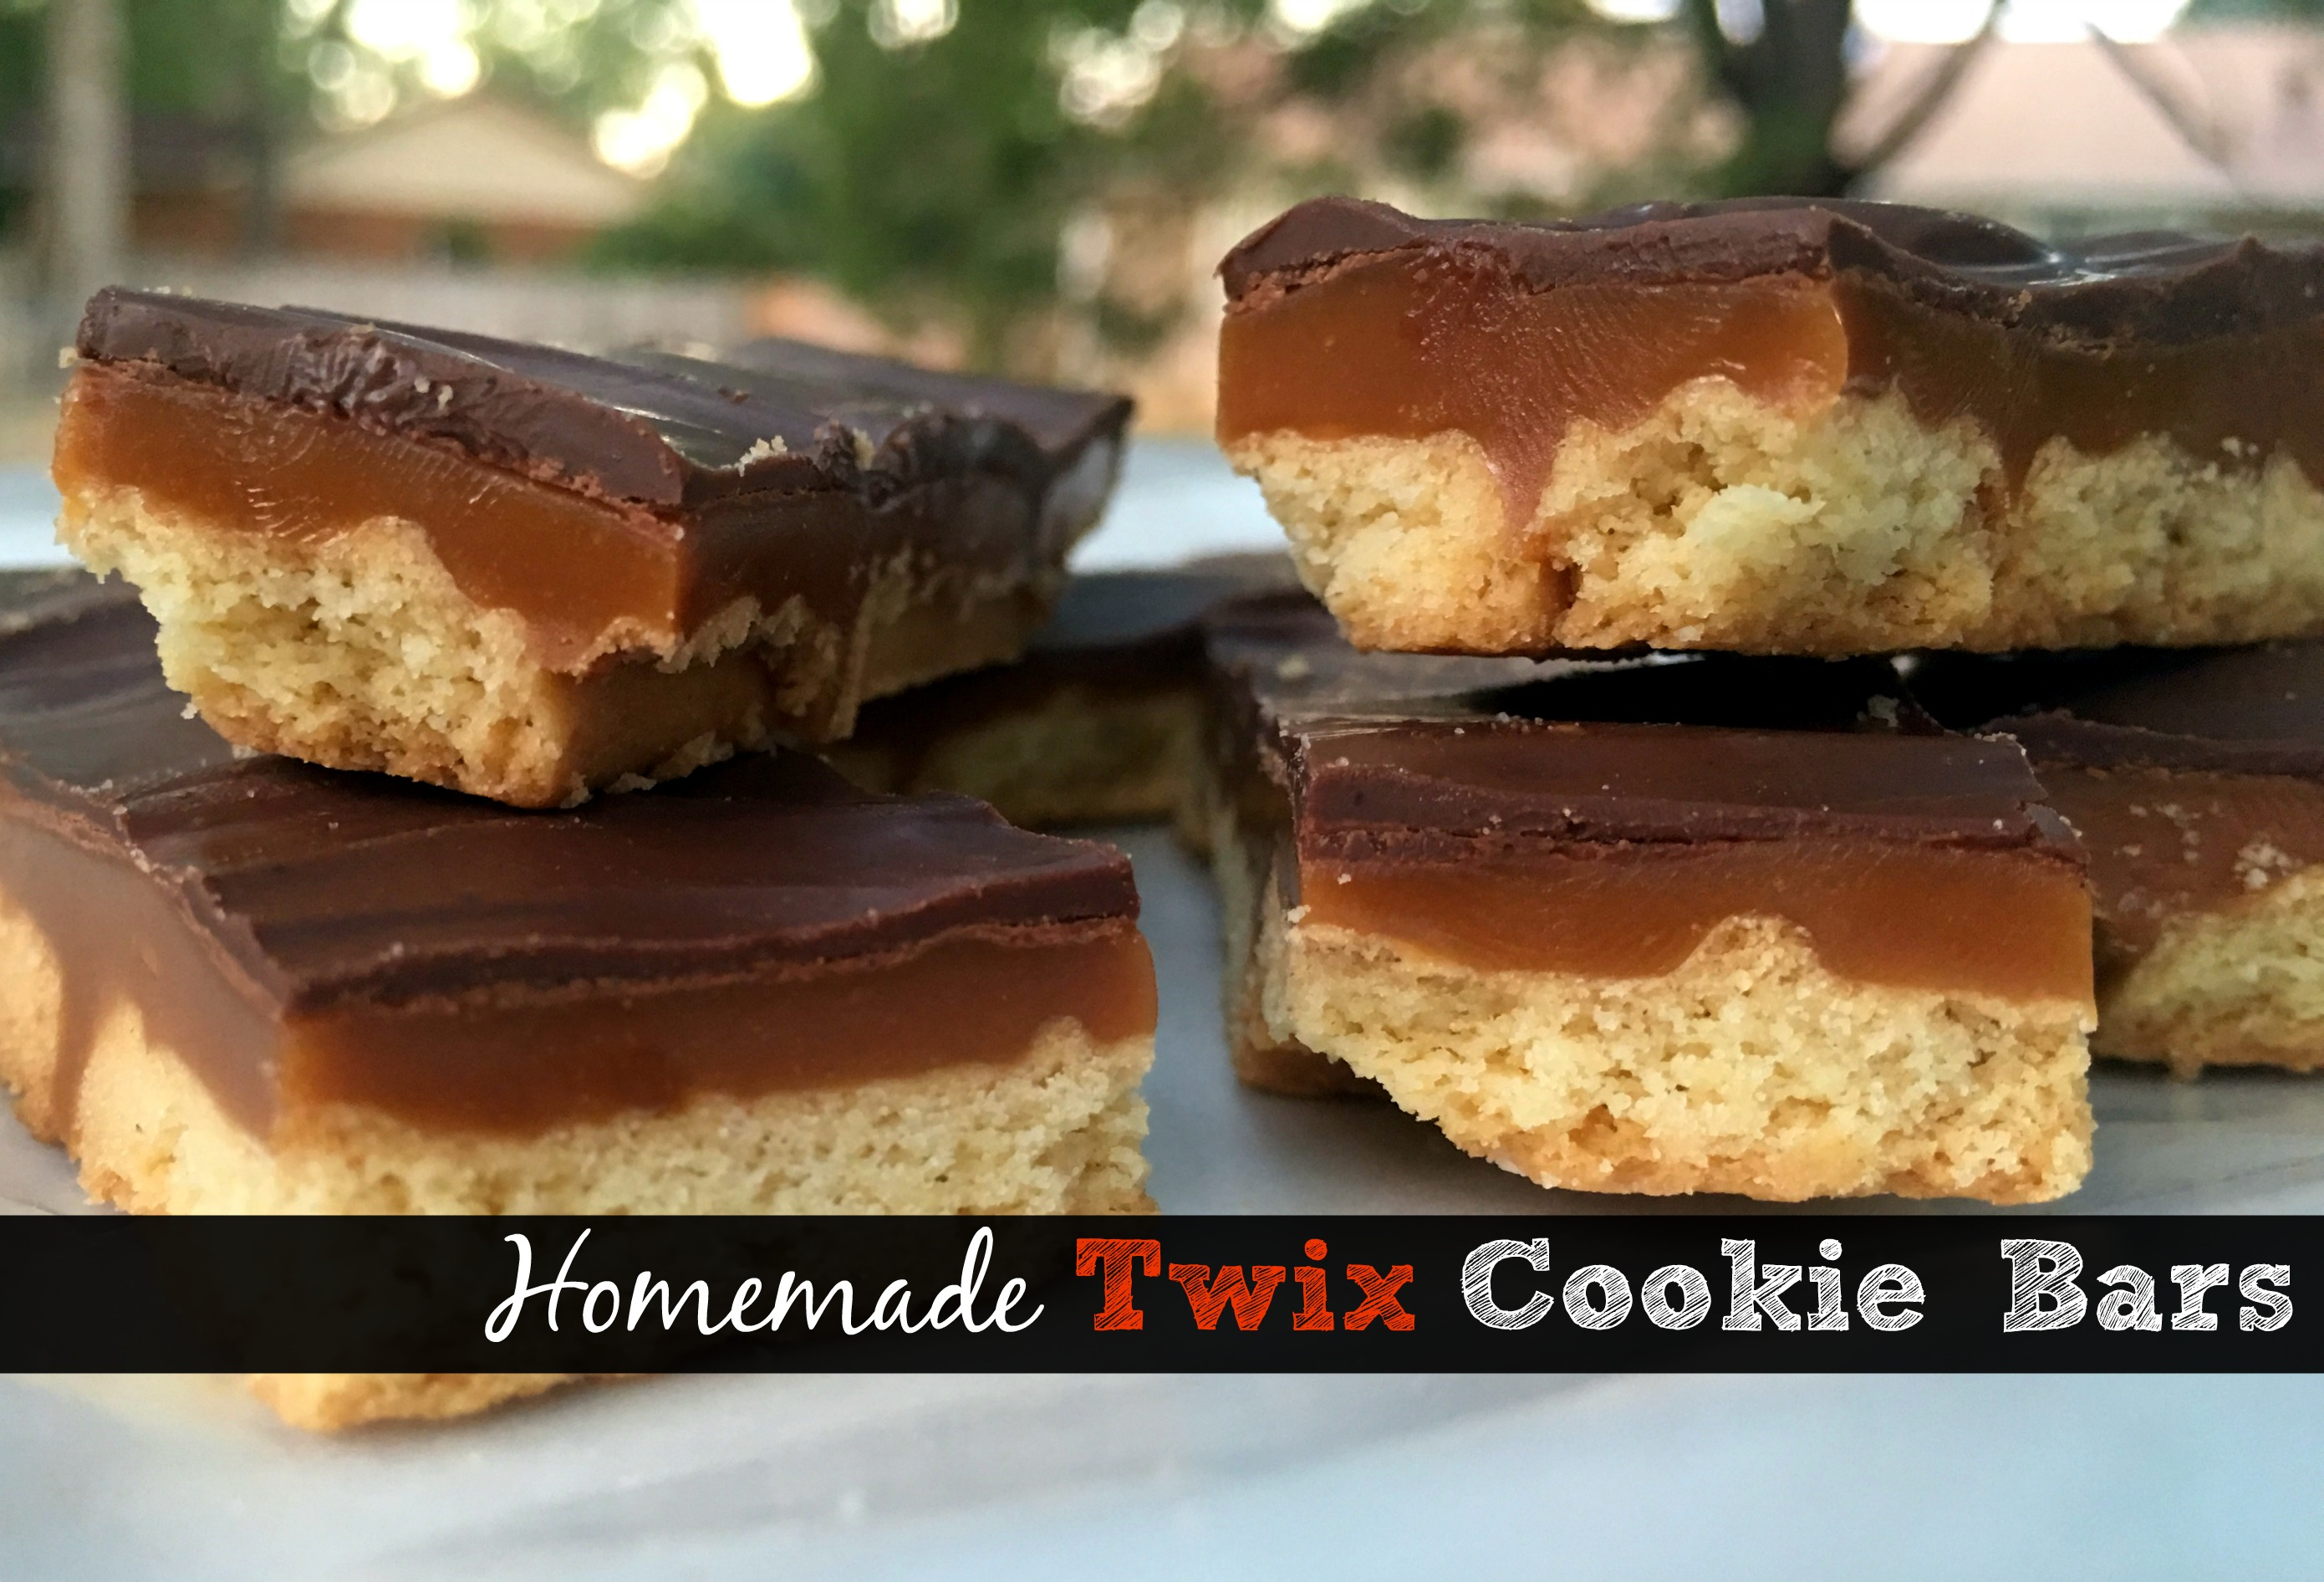 Twix Cookie Bars